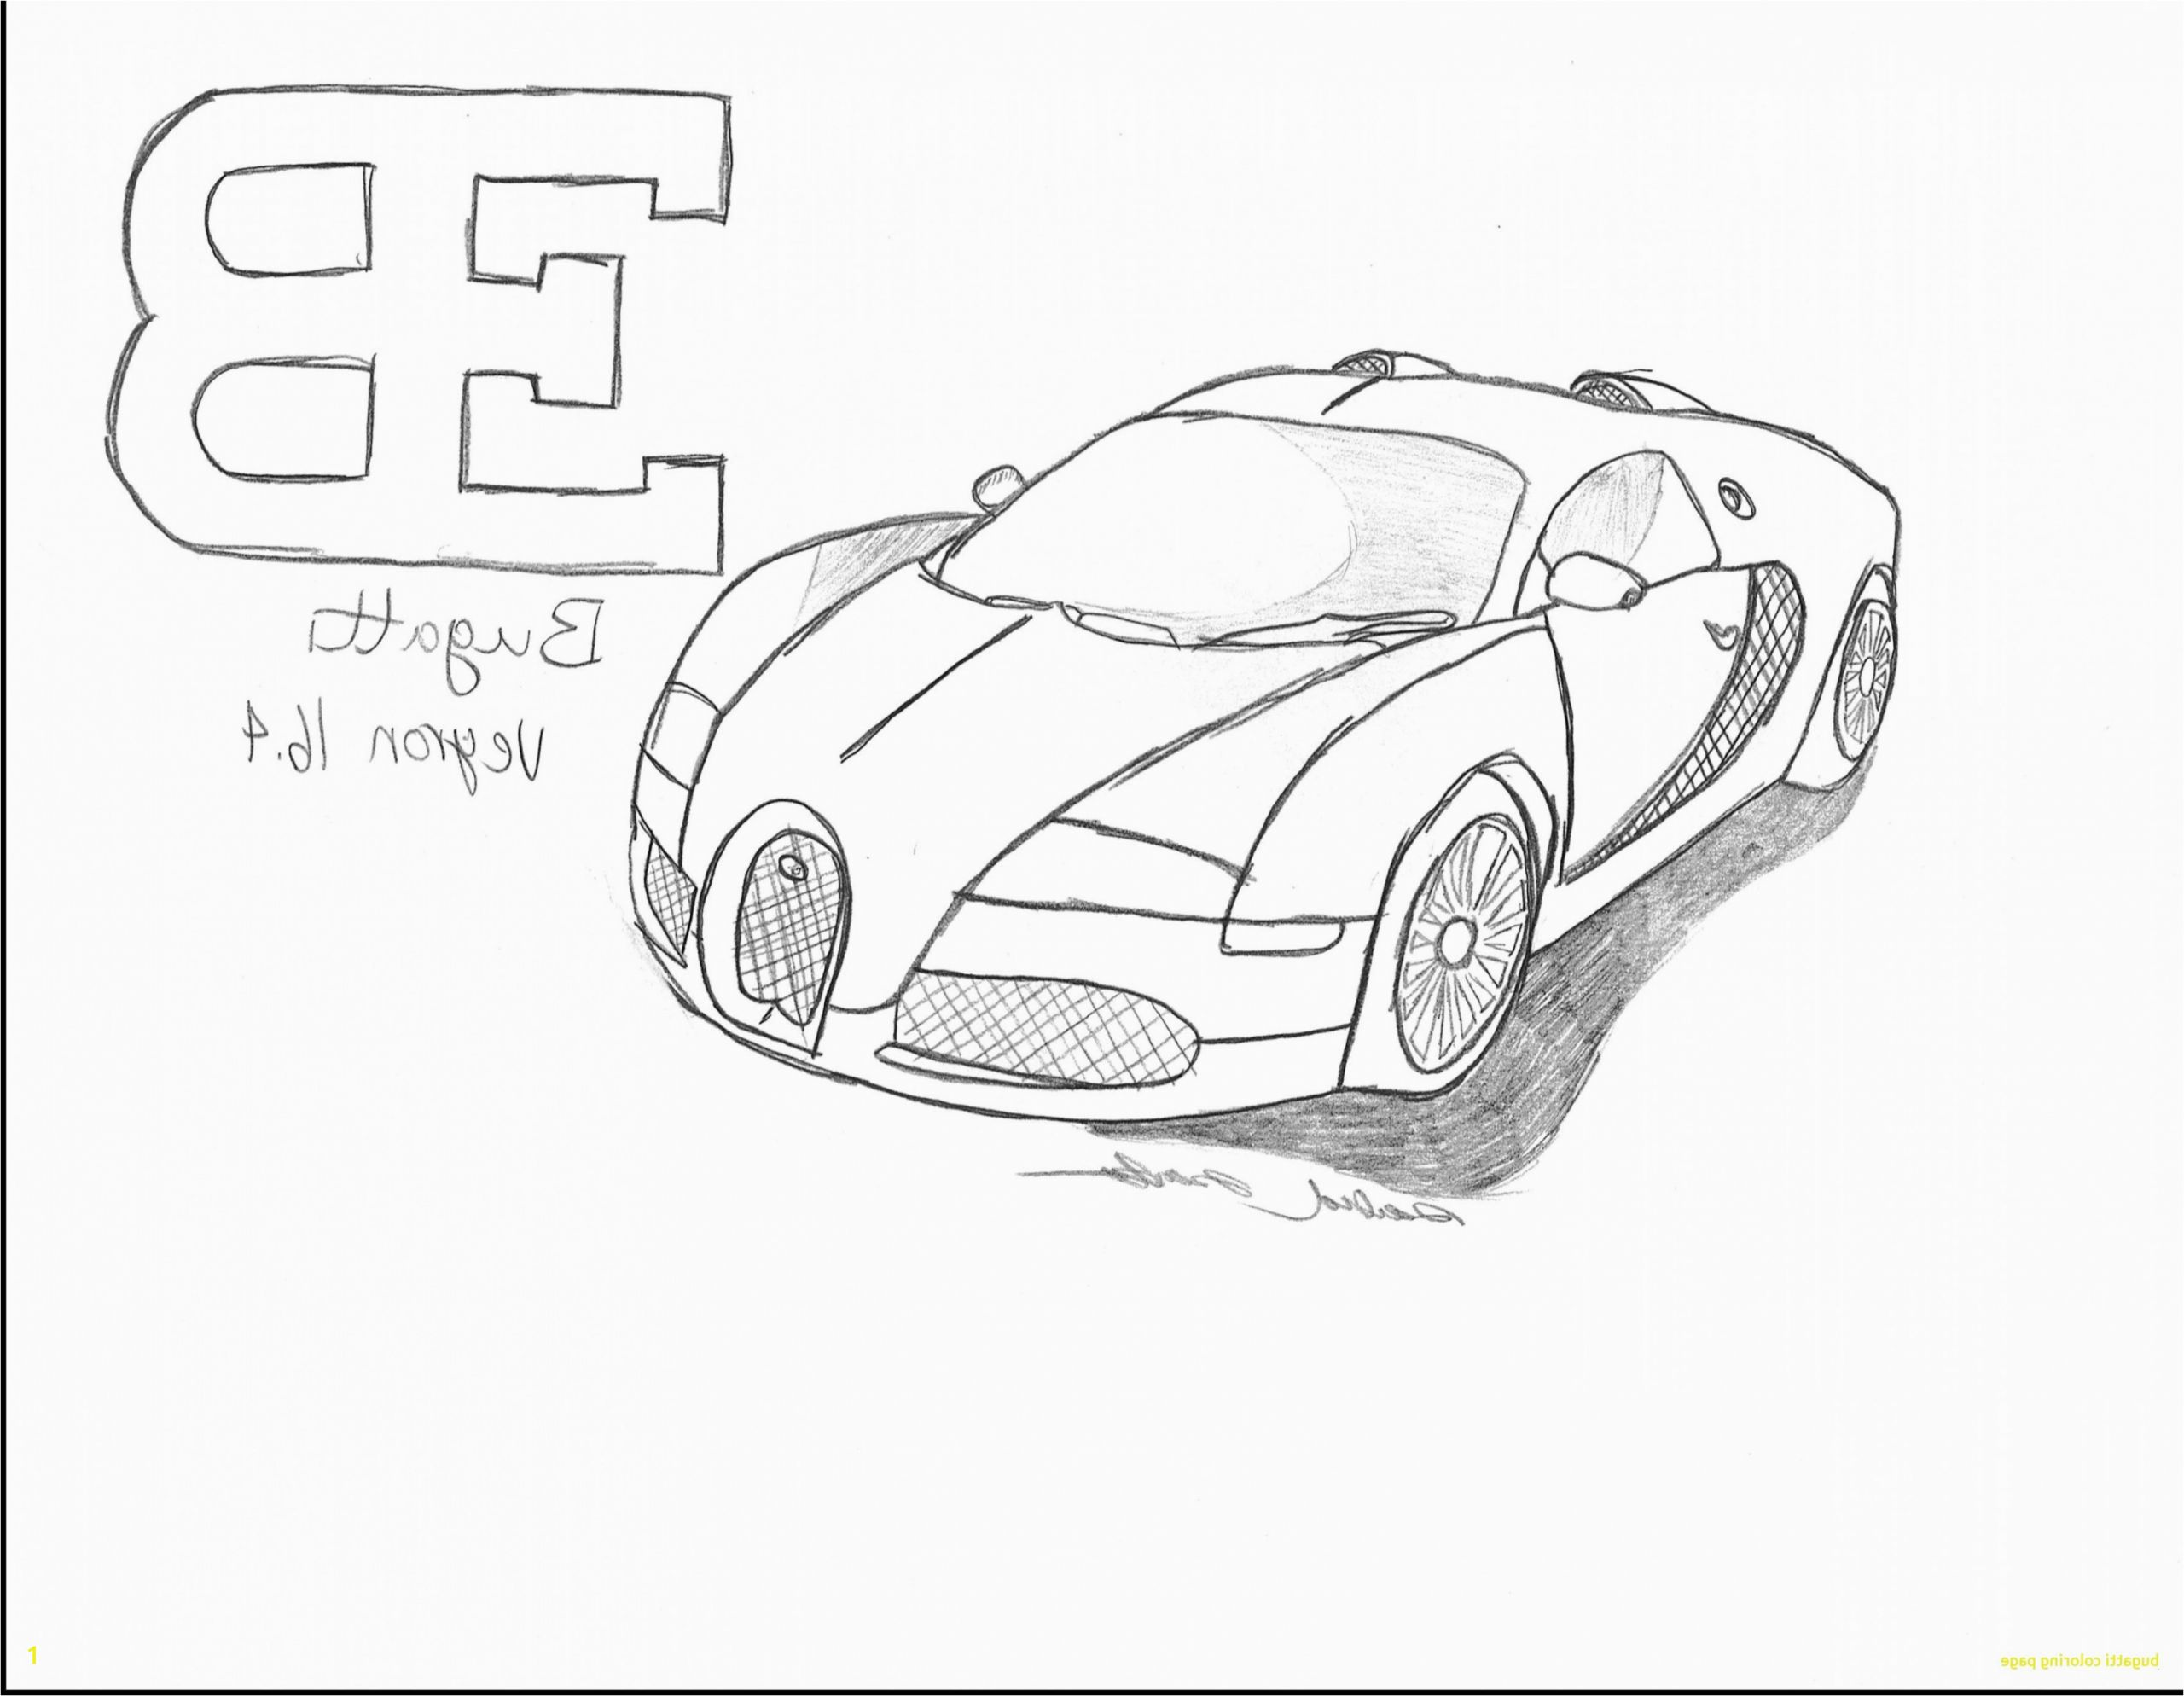 sports car coloring page awesome image bugatti coloring pages bugatti chiron kleurplaat archidev frisch of sports car coloring page